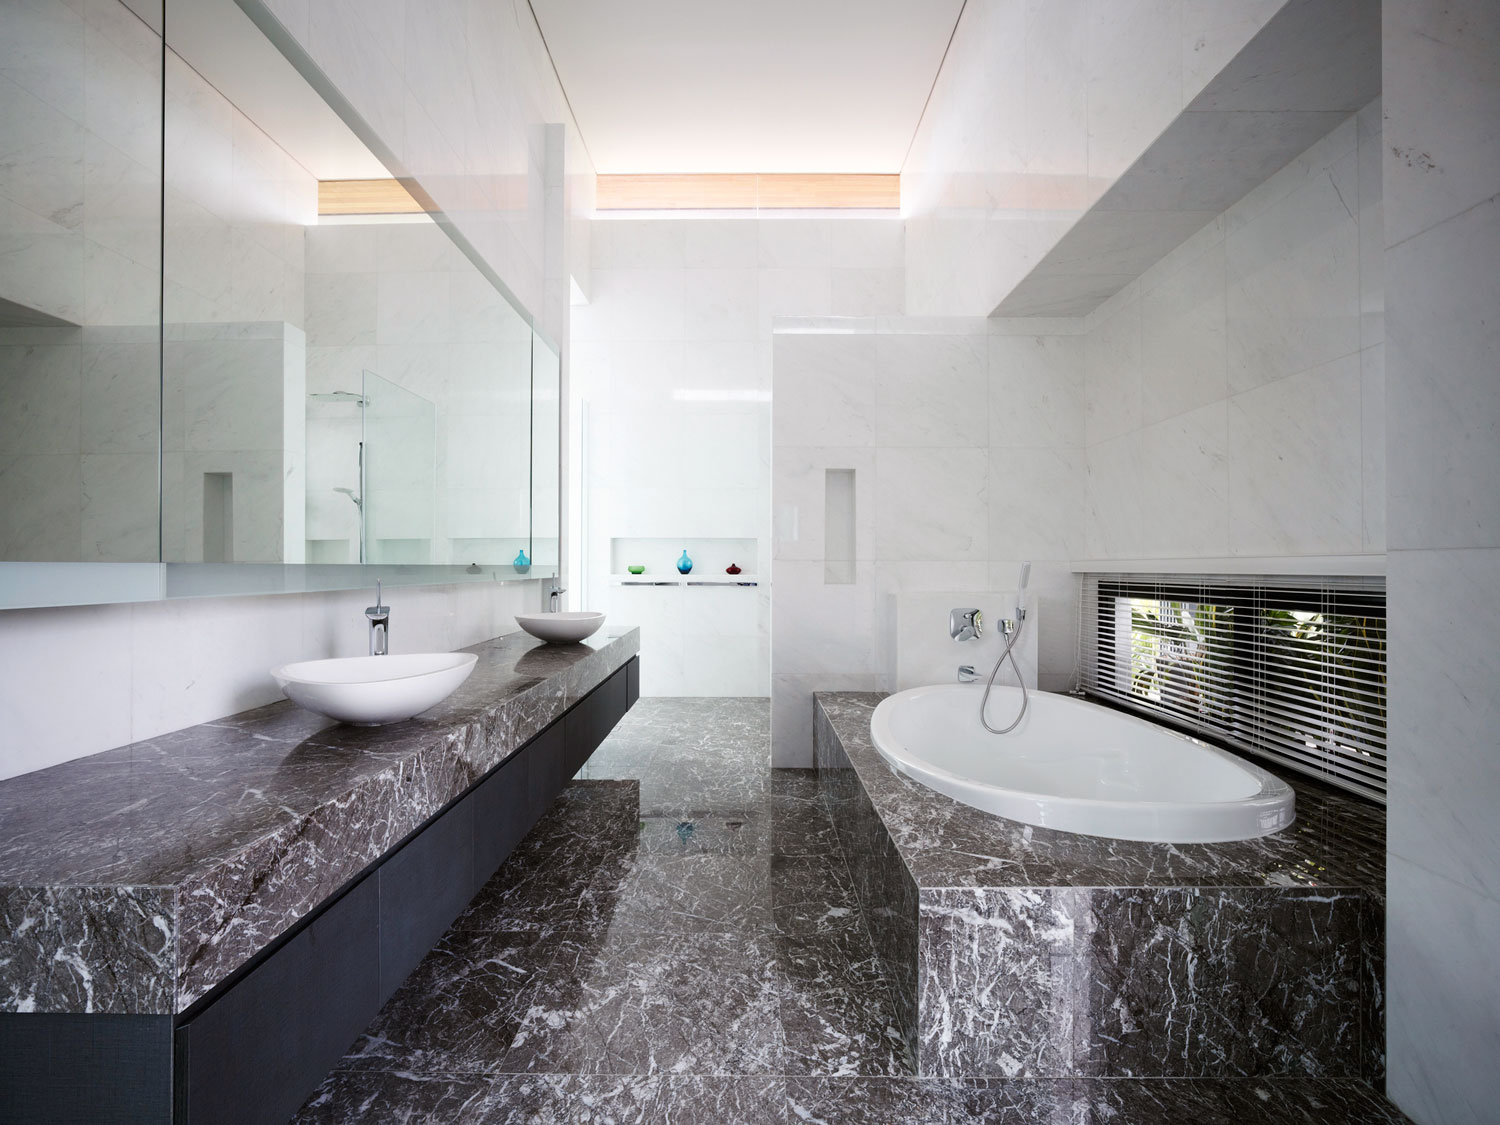 Interieur Ideeen Grijze Vloer 20 Ideas To Answer Is Marble Tile Good For Bathroom Floor